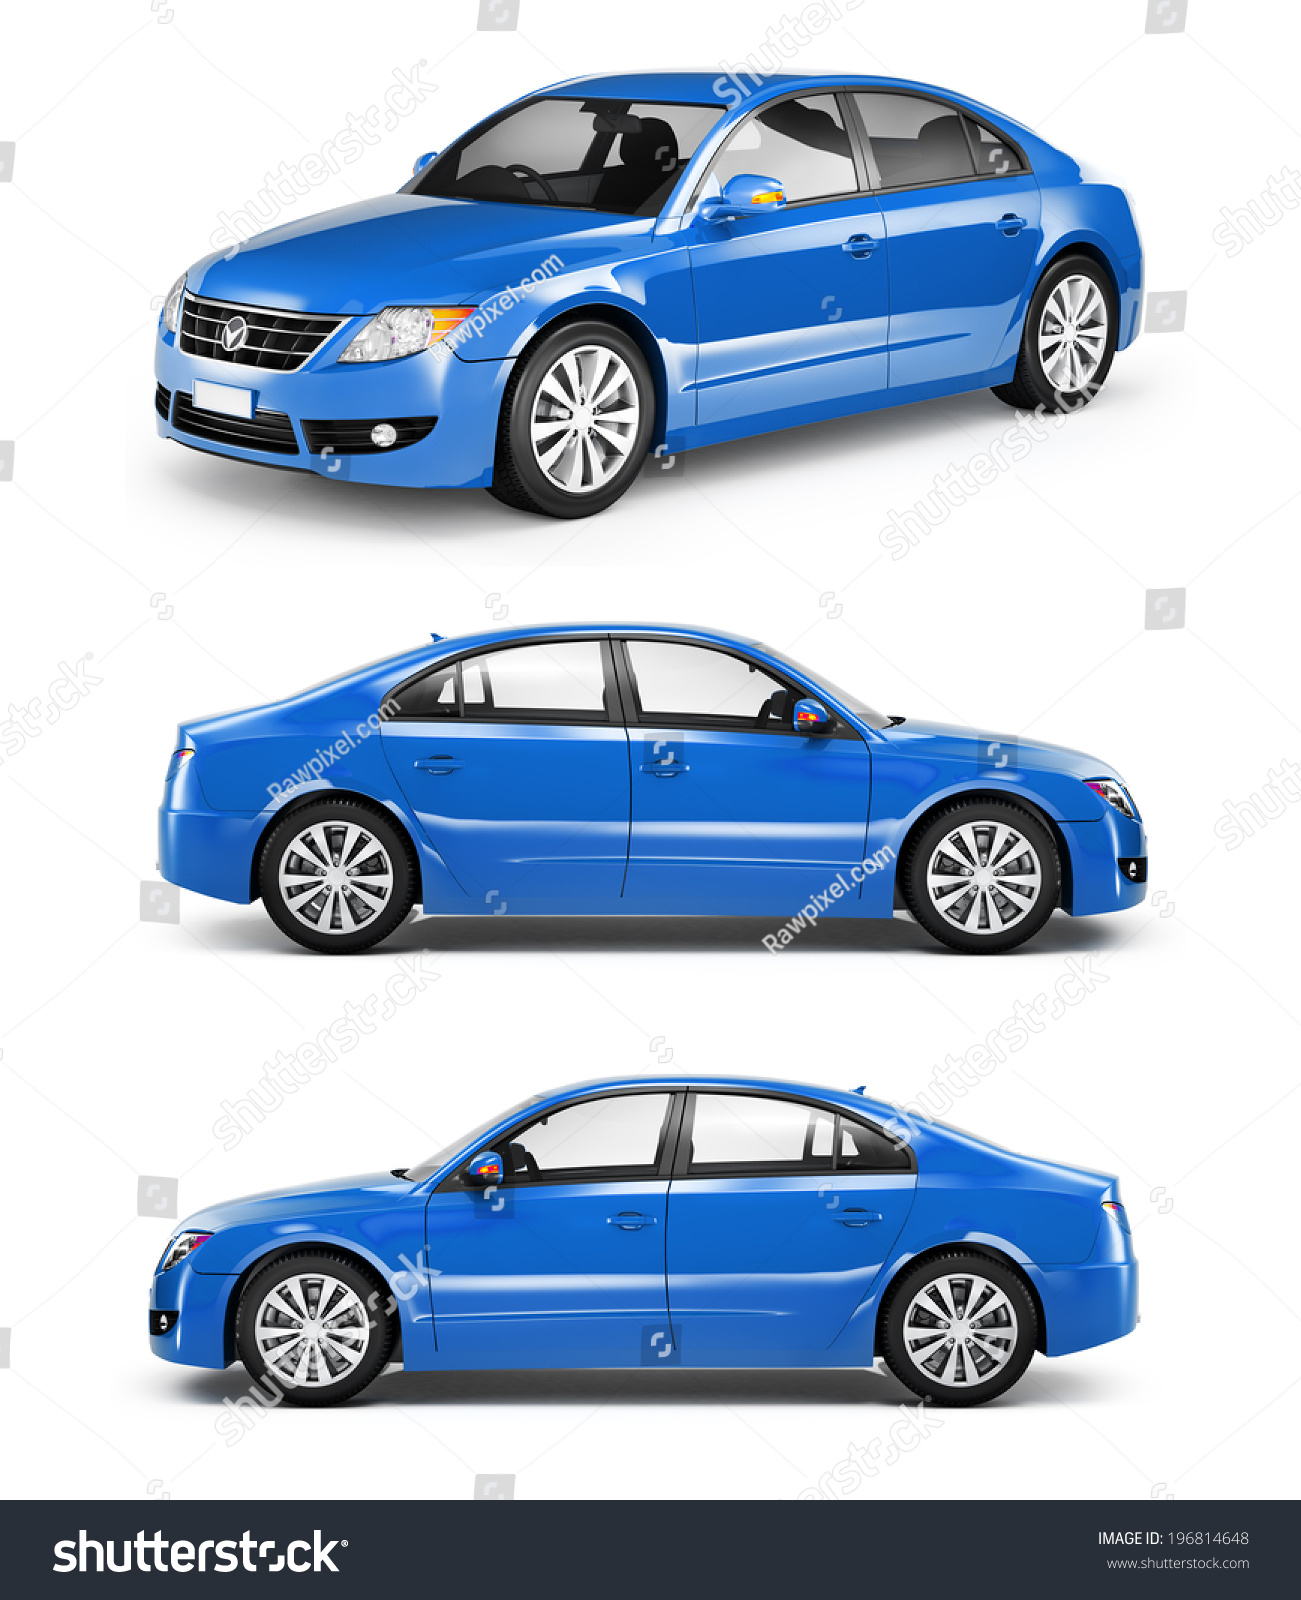 3d Blue Sedan Car Stock Illustration 196814648 - Shutterstock